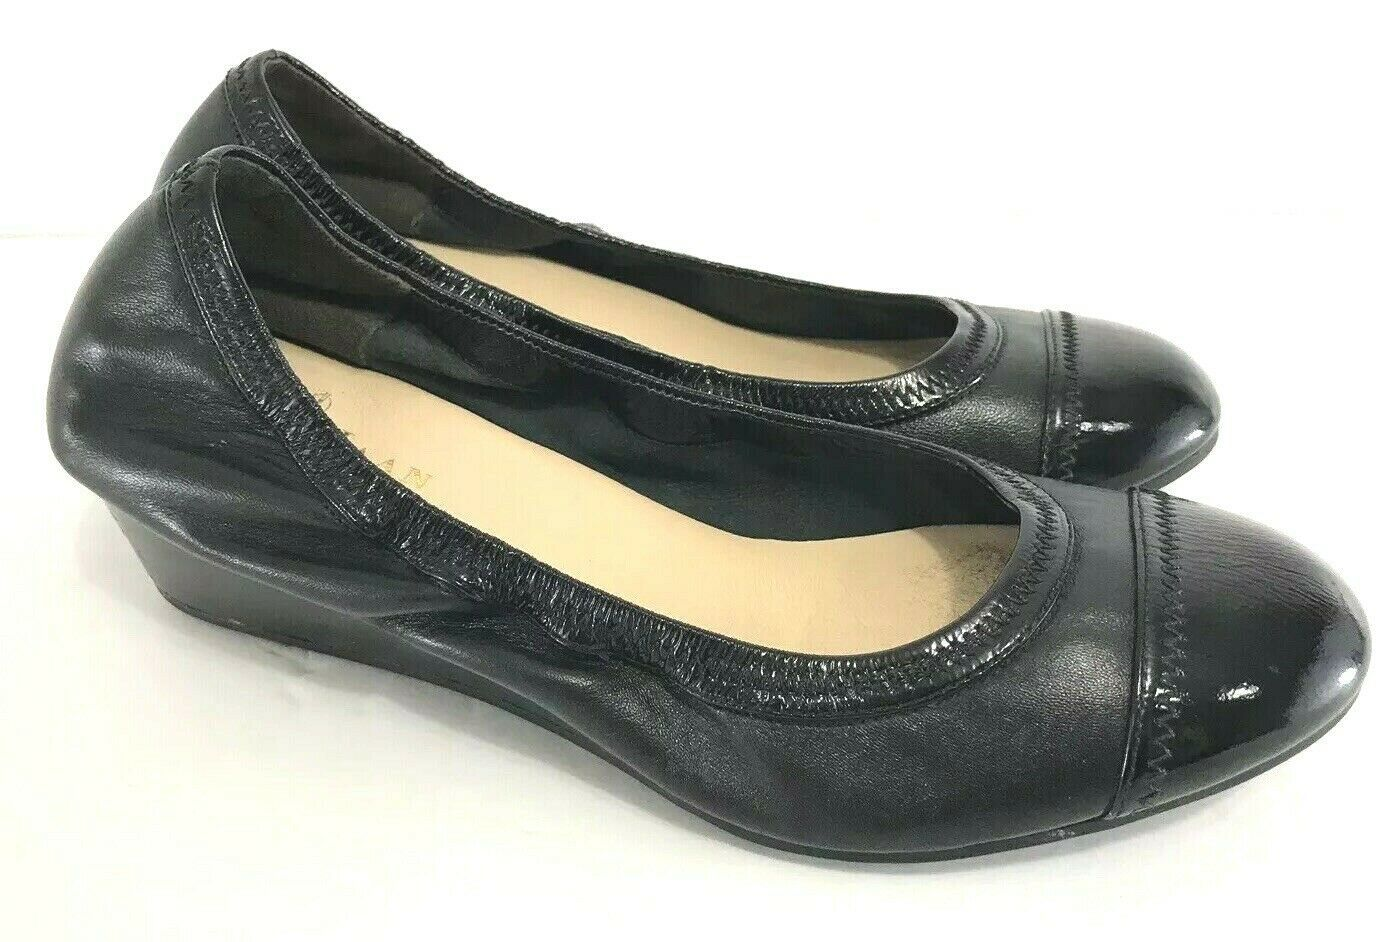 Cole Haan Air Black Leather Cap Round Toe Ballet Flat Wedge Heel sz 7 Shoe - $64.35